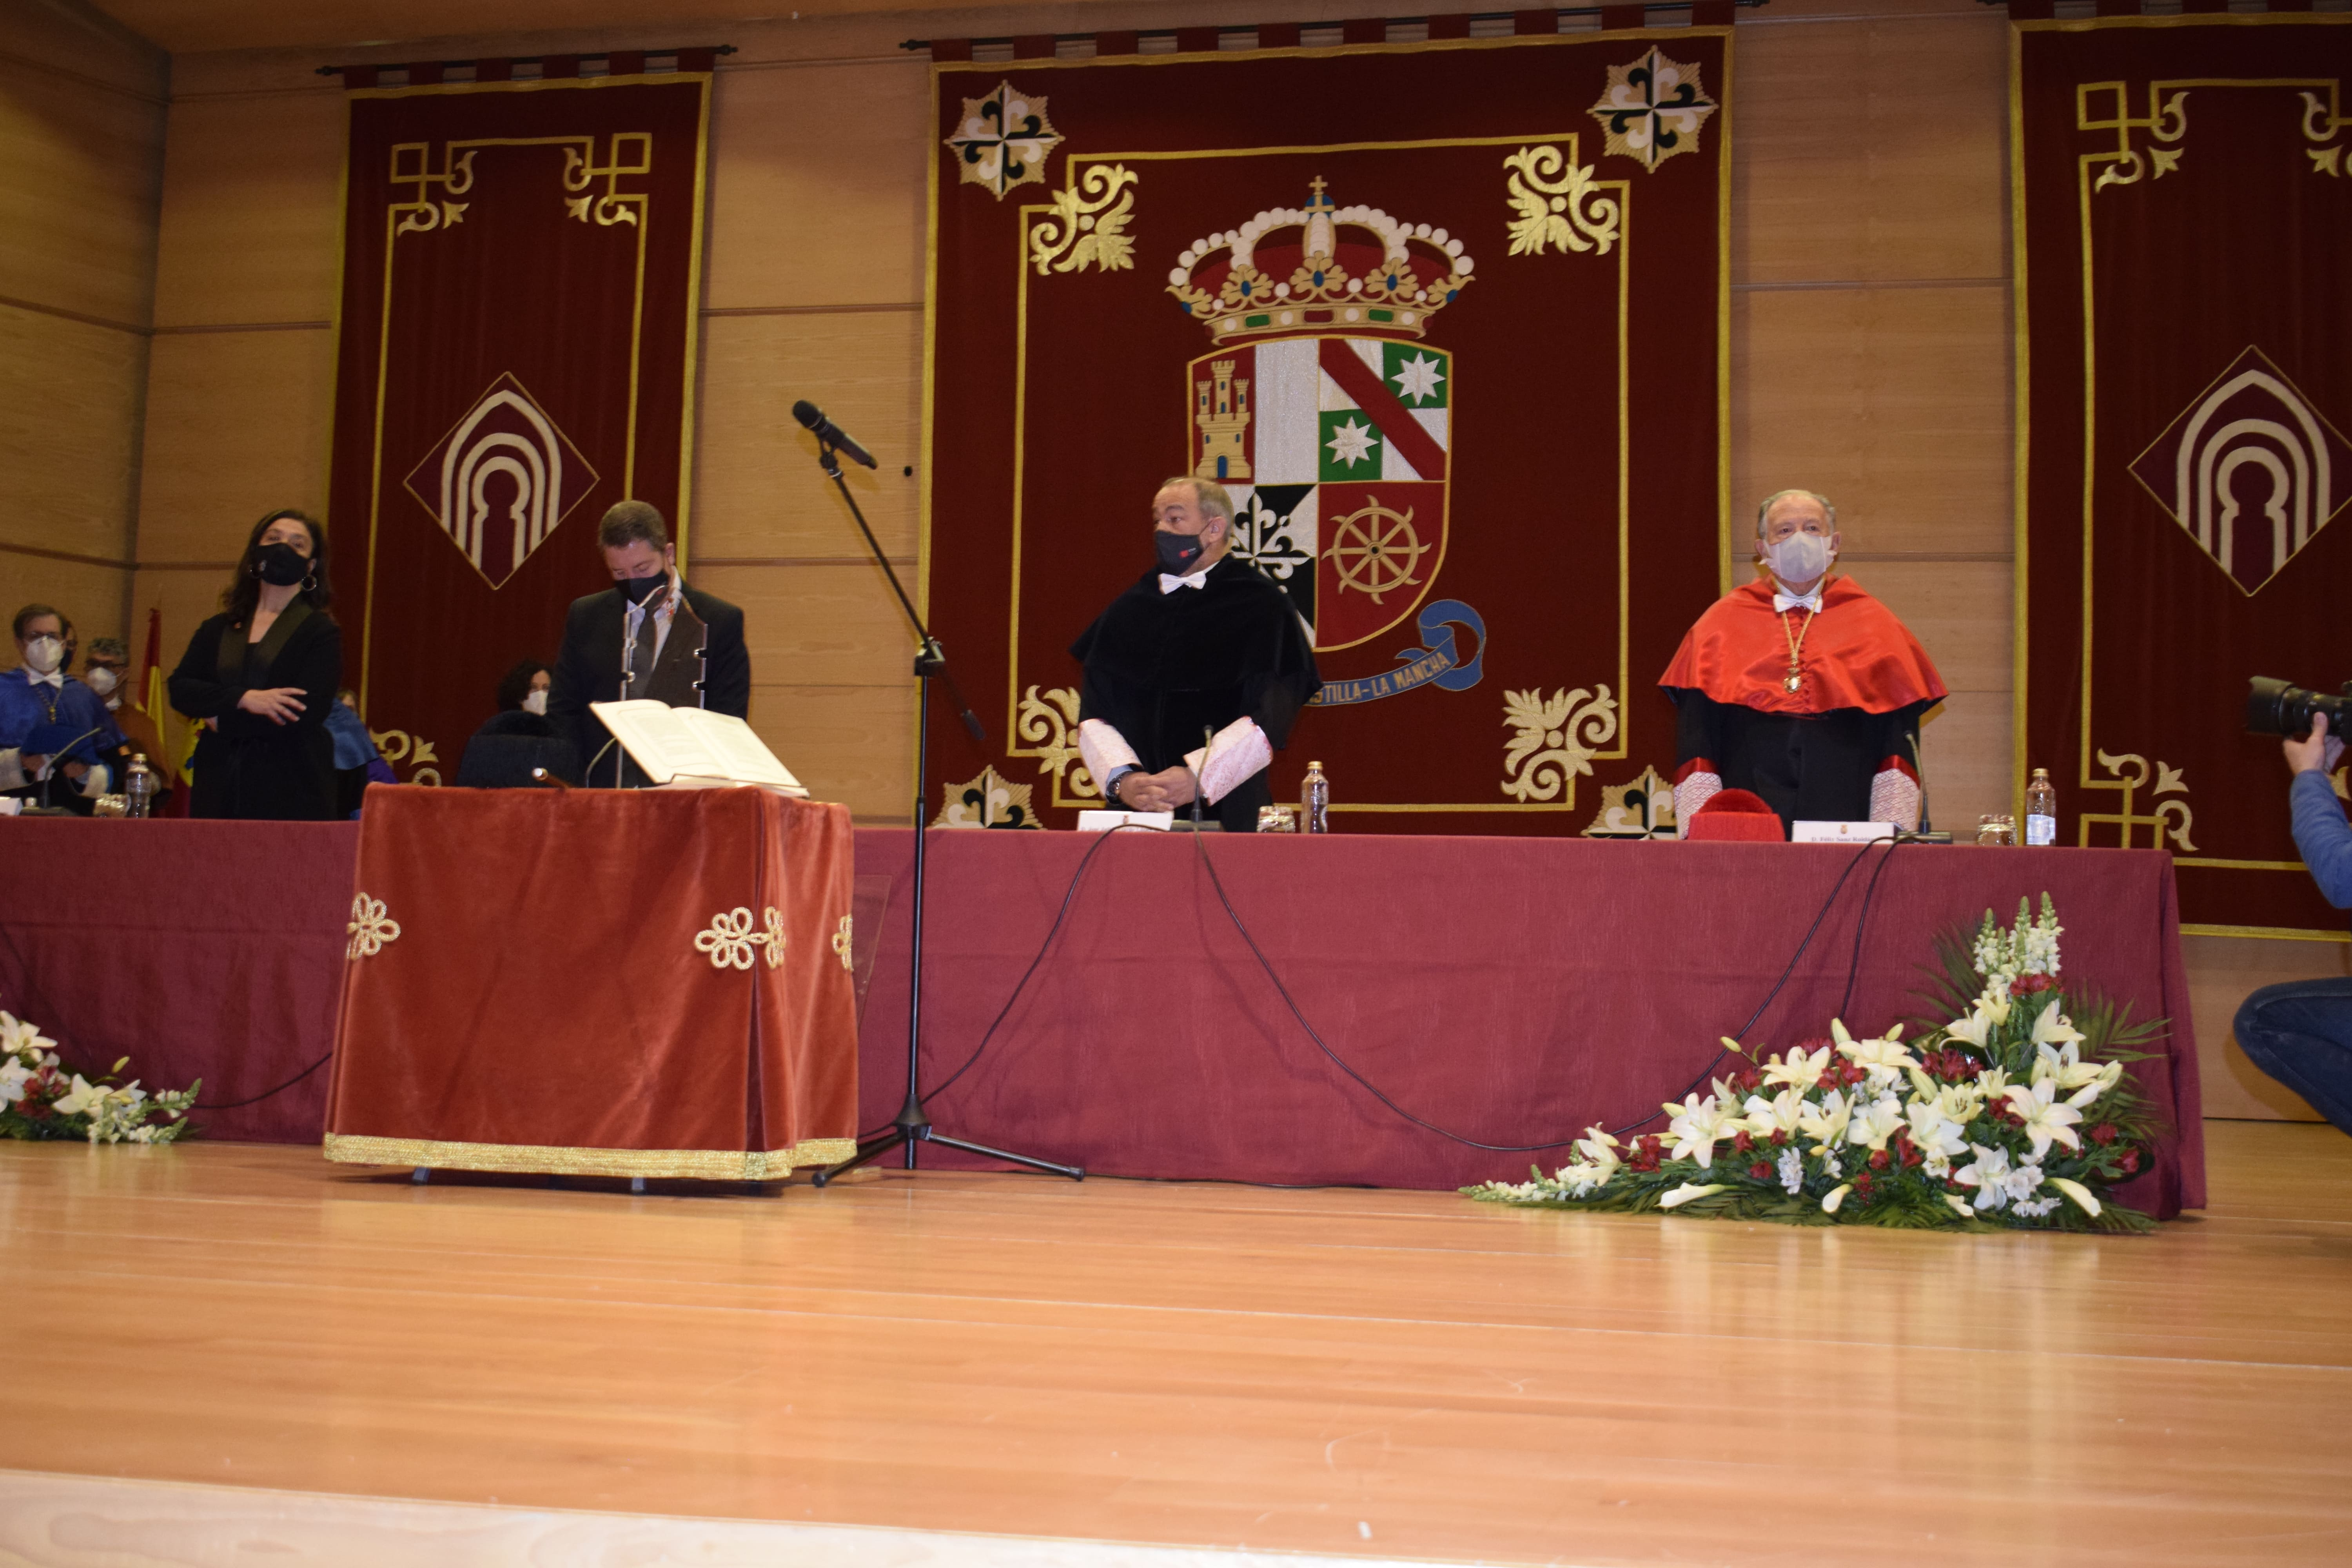 Toma posesion rector